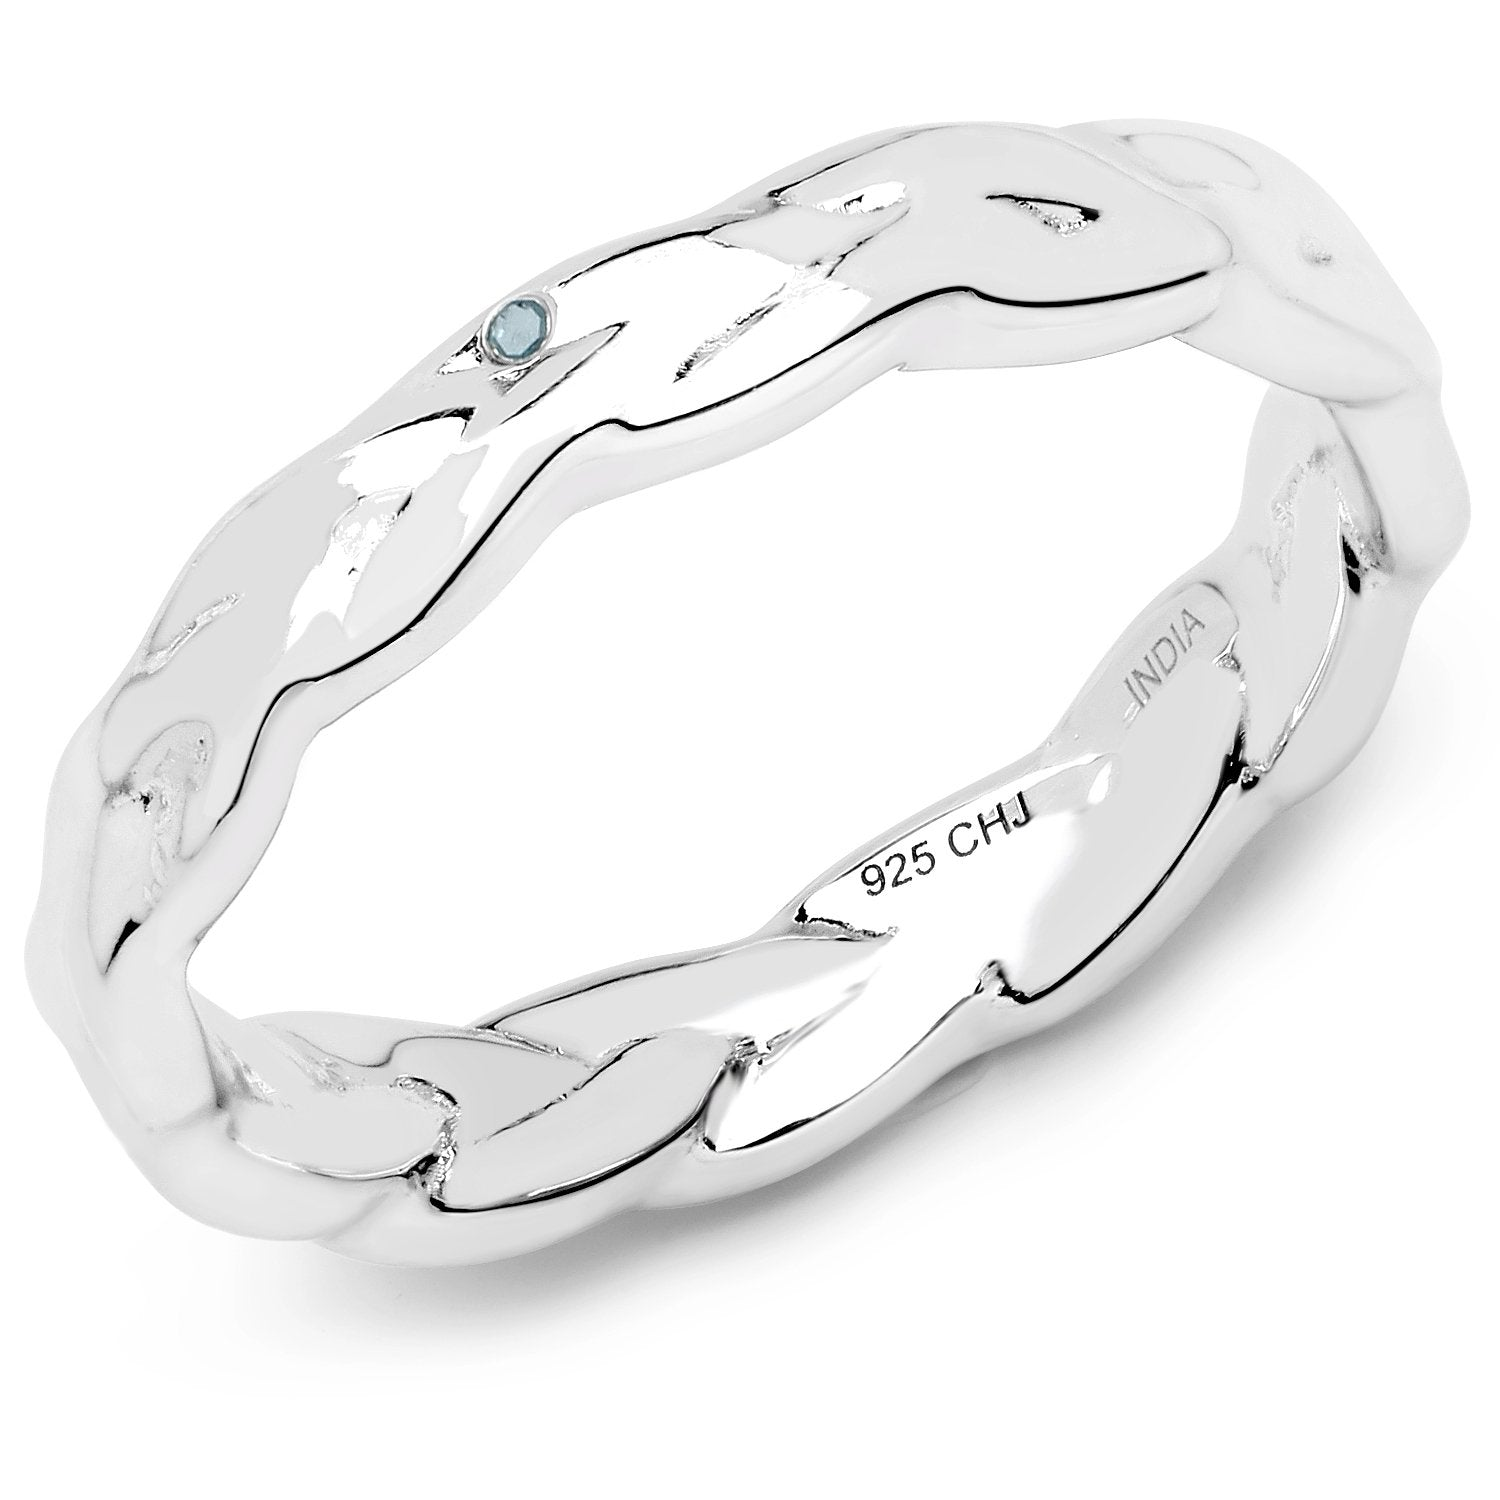 LoveHuang 0.02 Carats Genuine Blue Diamond (I-J, I2-I3) Twisted Ring Solid .925 Sterling Silver With Rhodium Plating